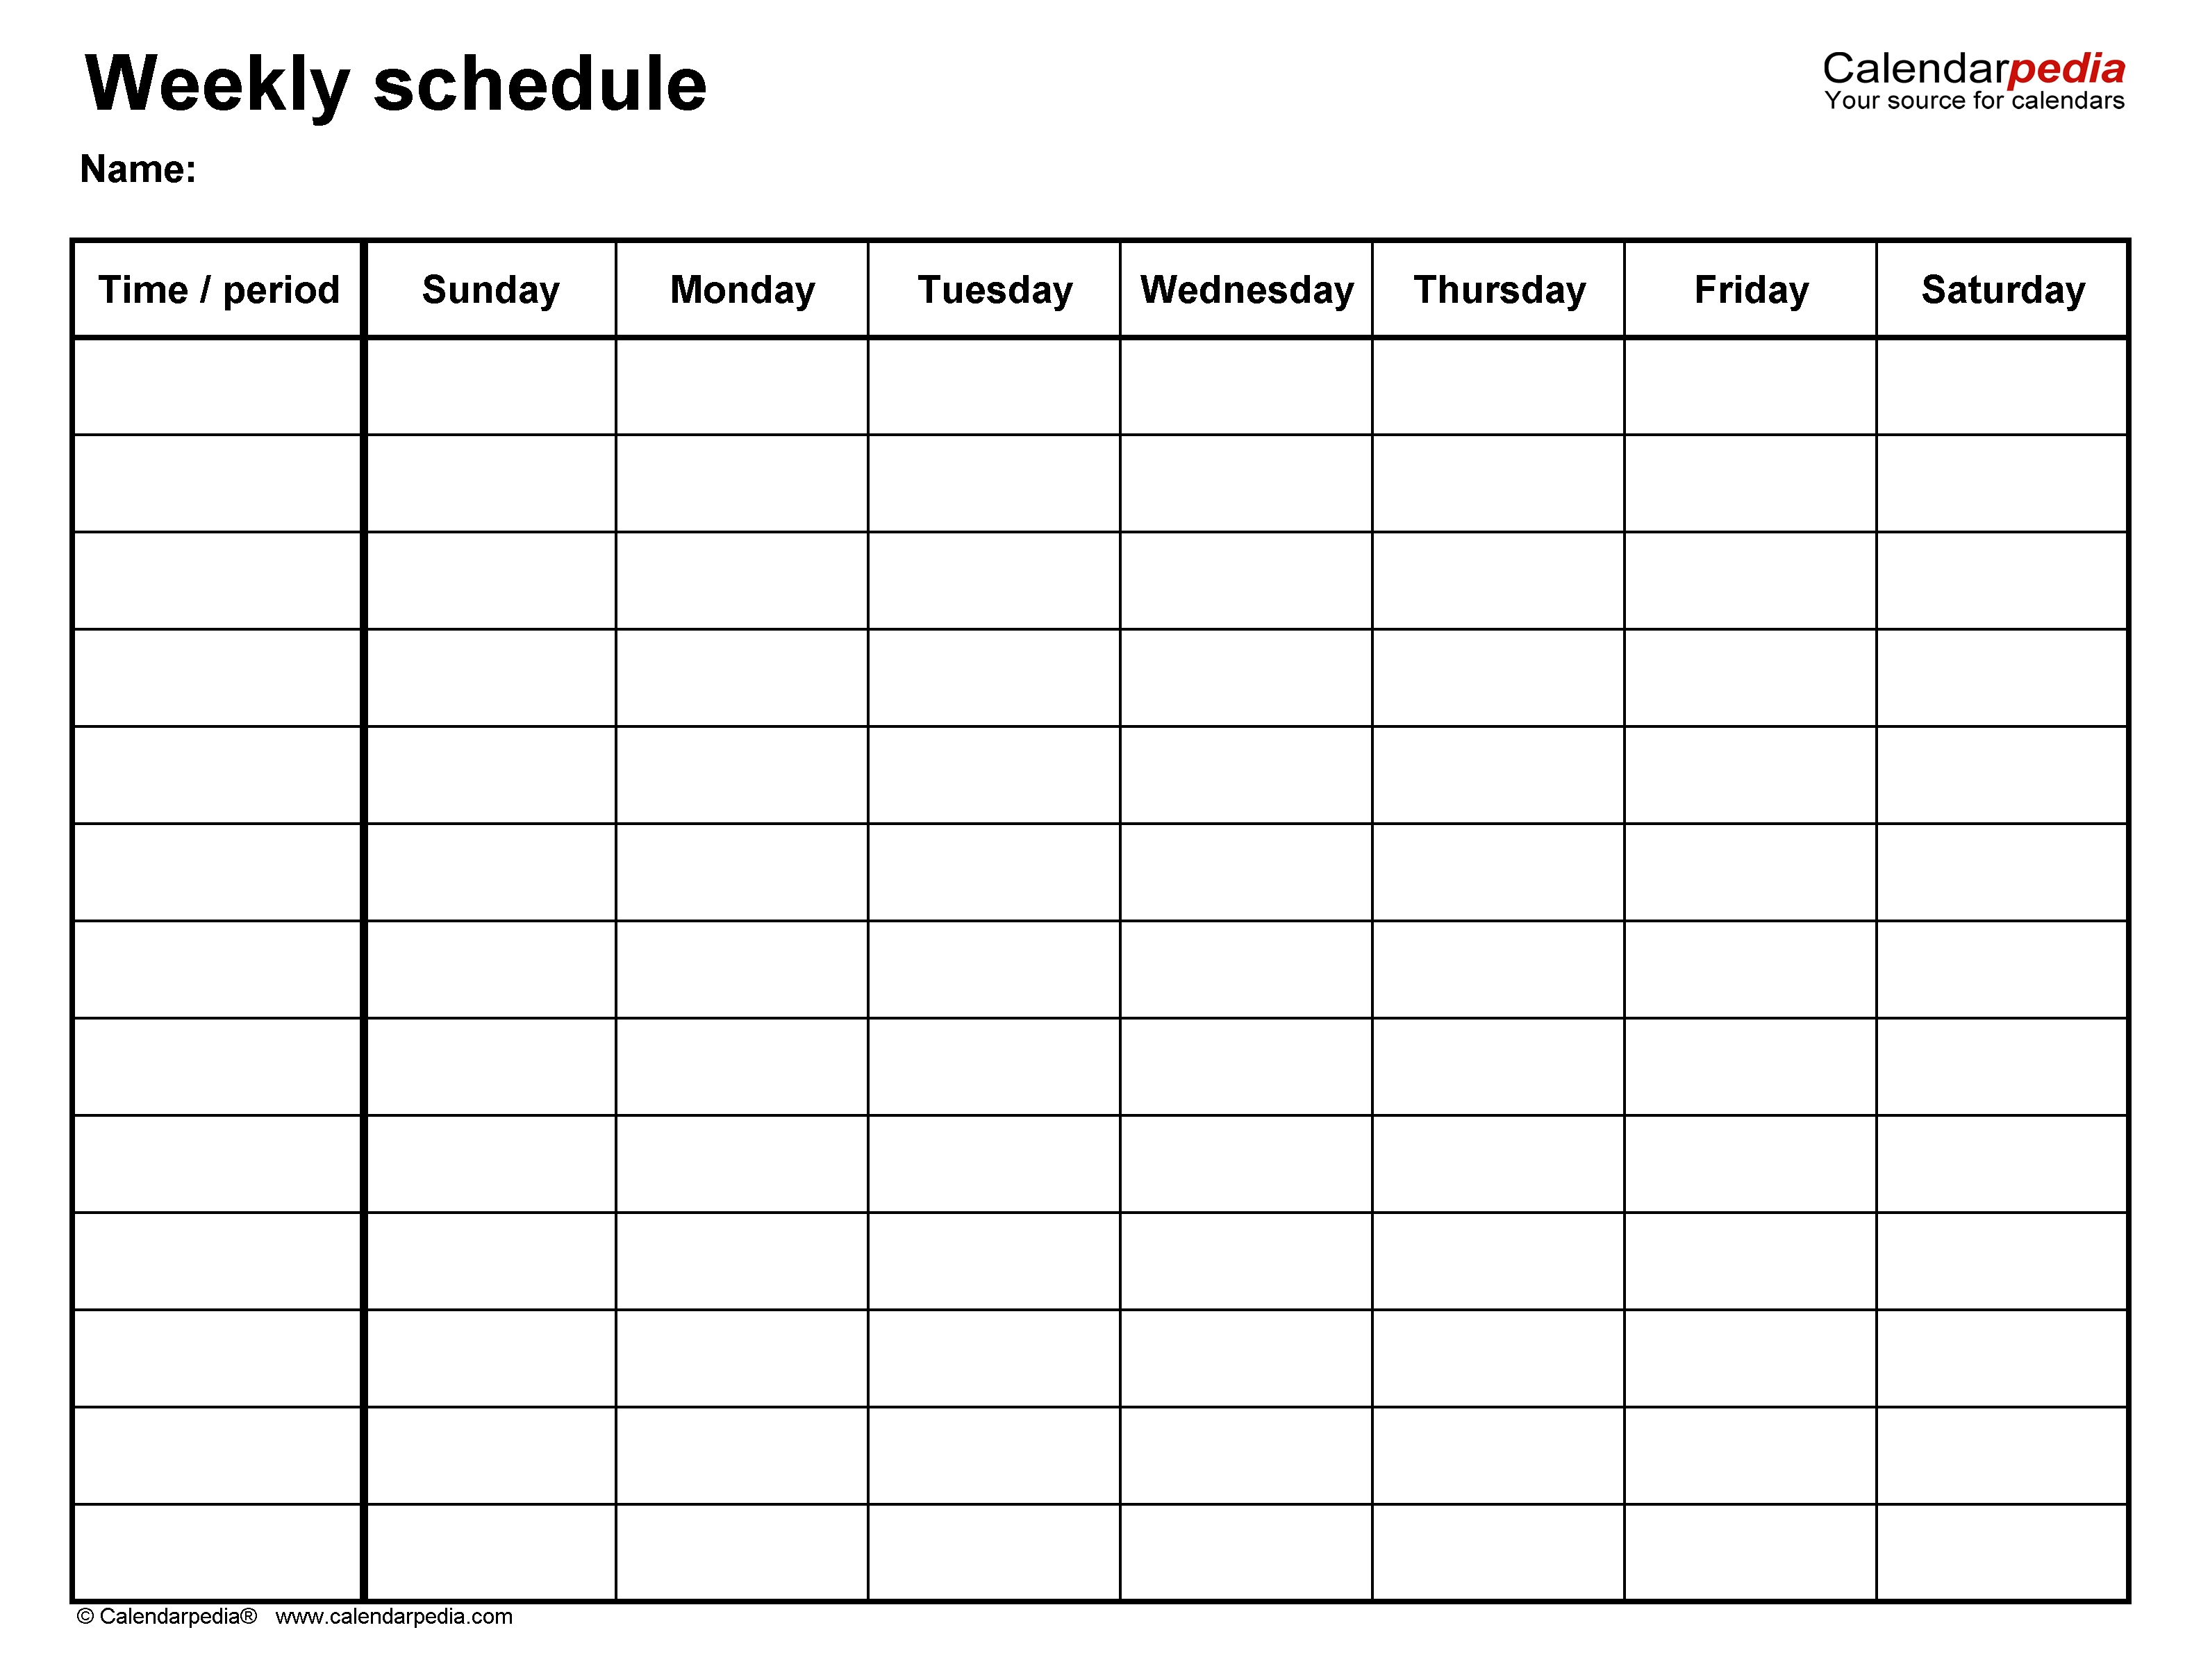 Free Weekly Schedule Templates For Word - 18 Templates  Editable Weekly Schedule